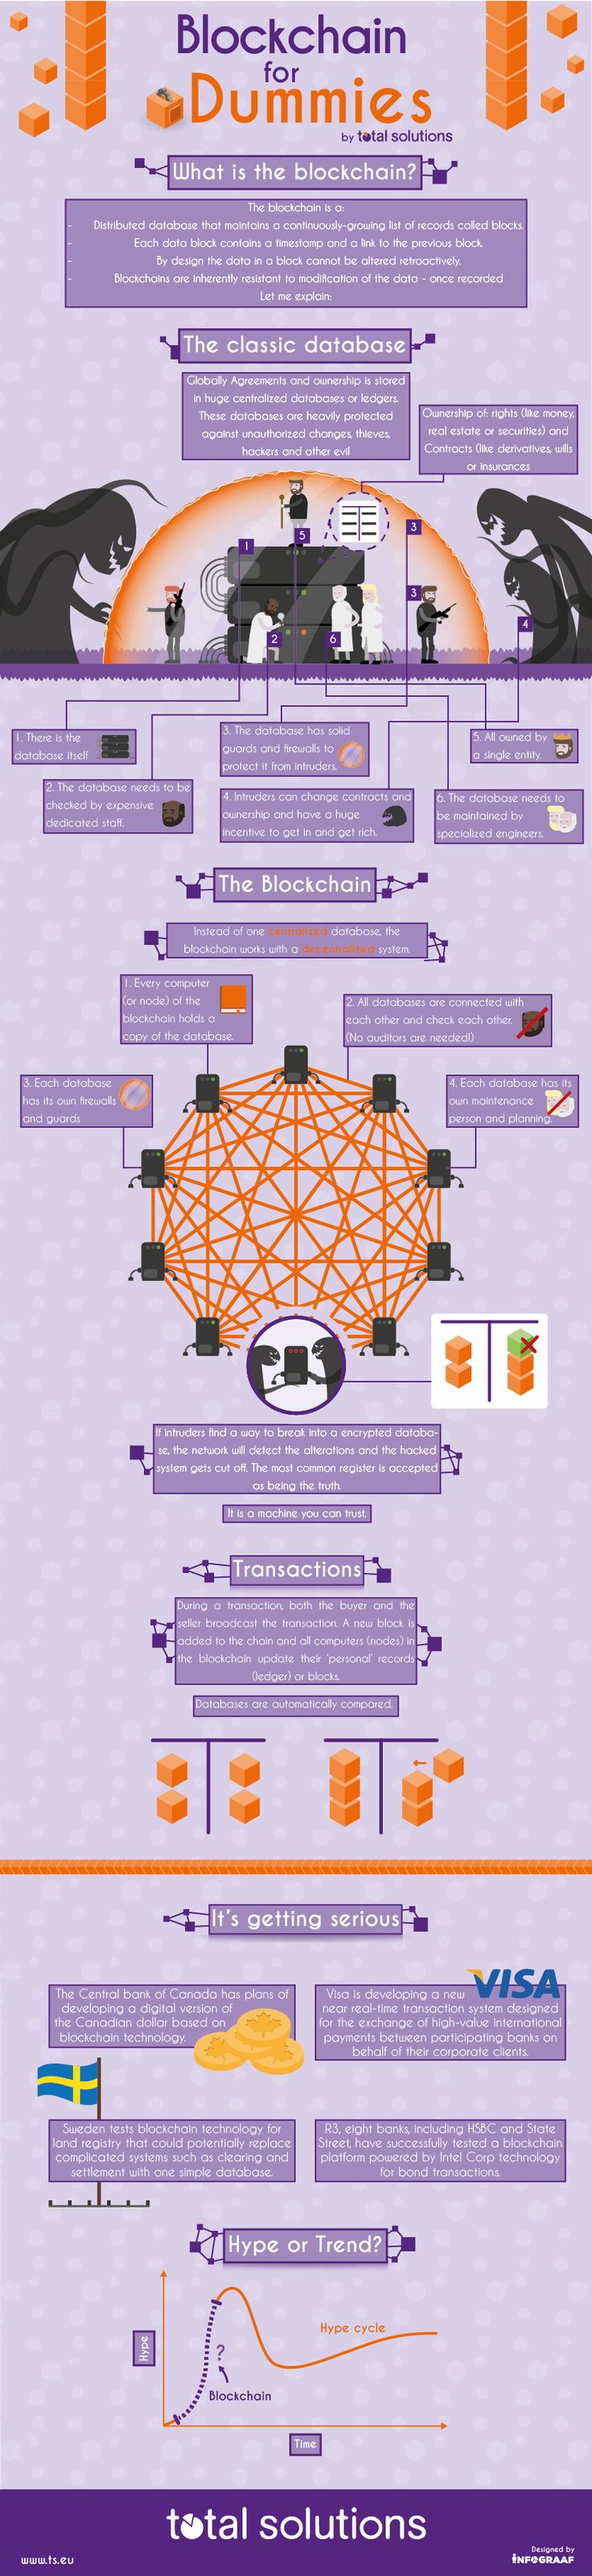 The Blockchain, infographic - Total Solutions - Financial Markets en Treasury